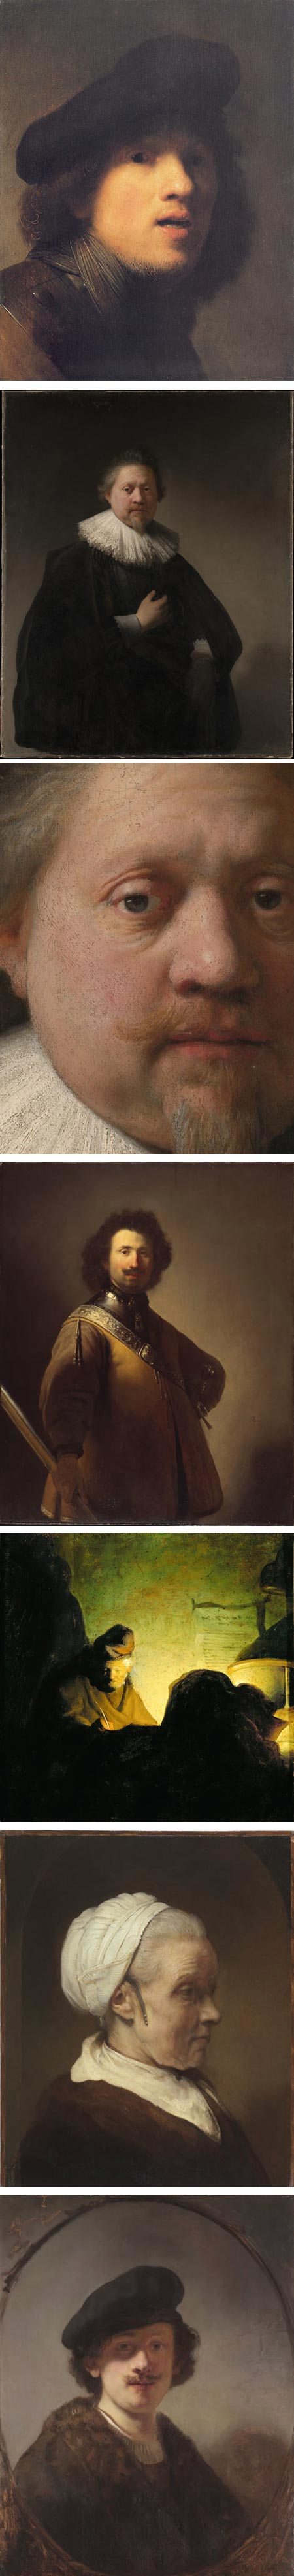 Rembrandt in America